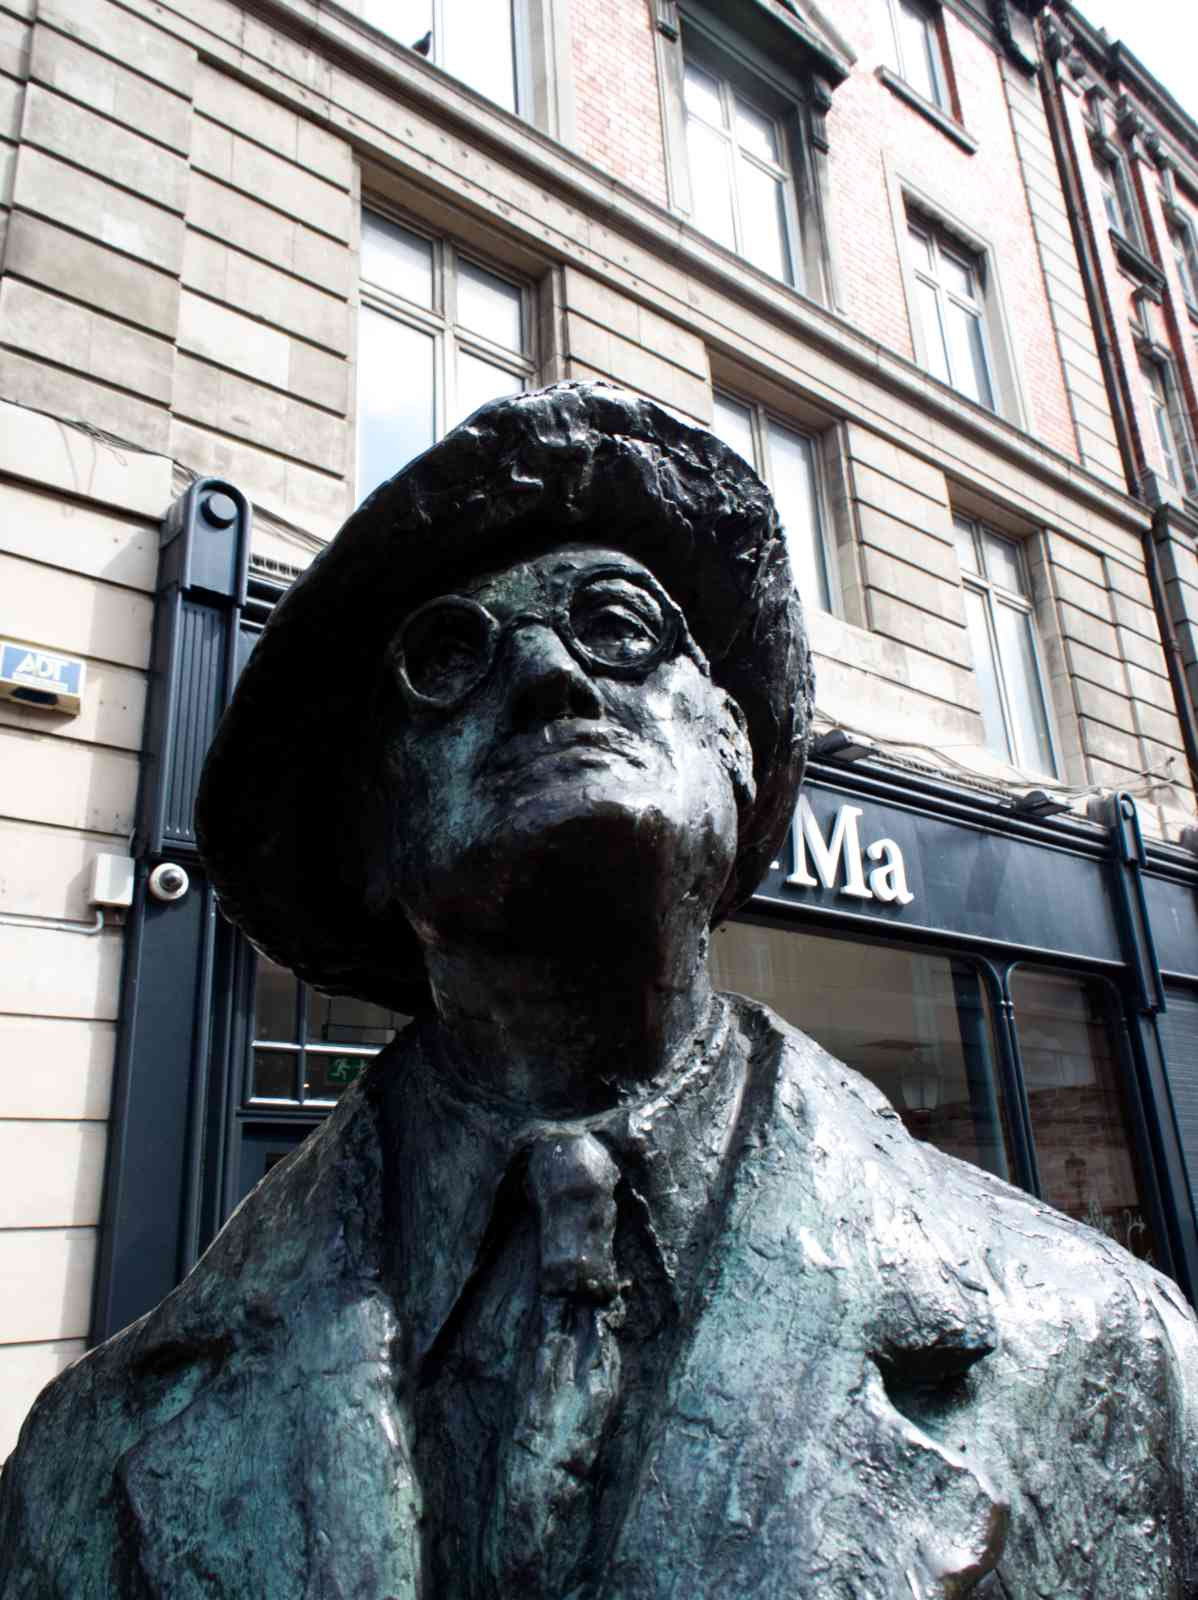 Dublin - James Joyce